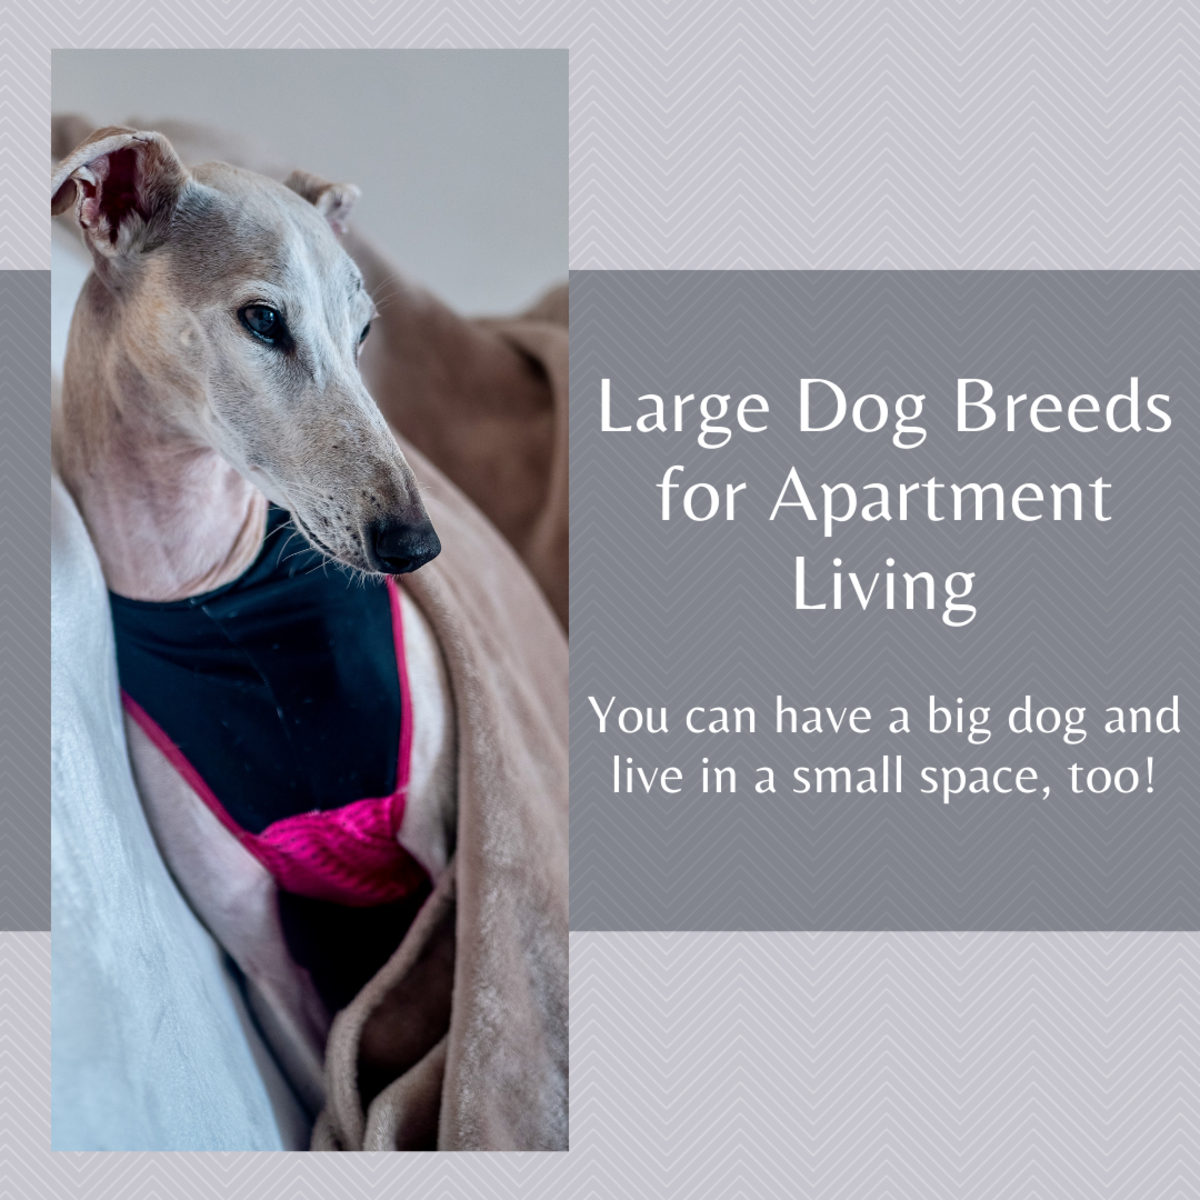 The Greyhound is one of the best large dog breeds for an apartment.